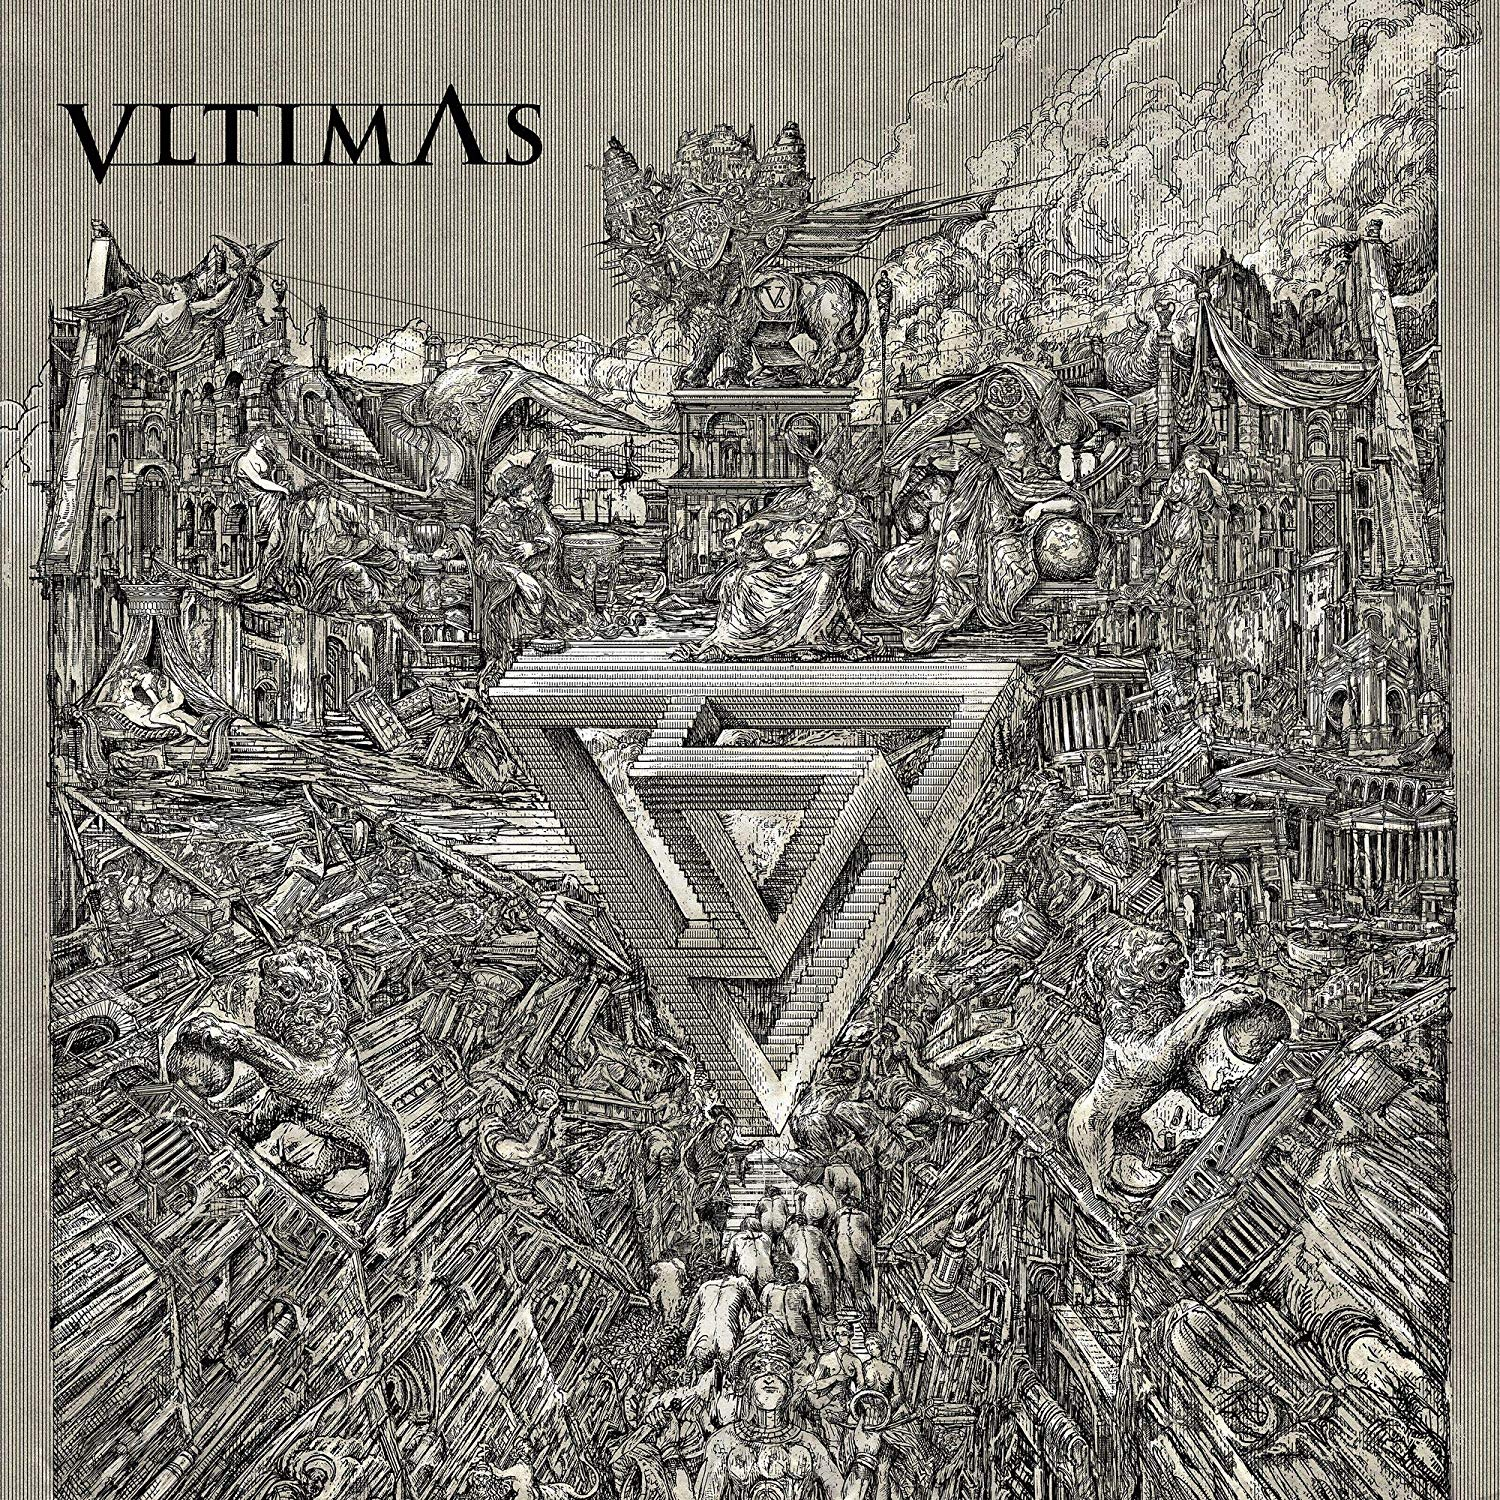 VLTIMAS - Something Wicked Marches In [Import LP]